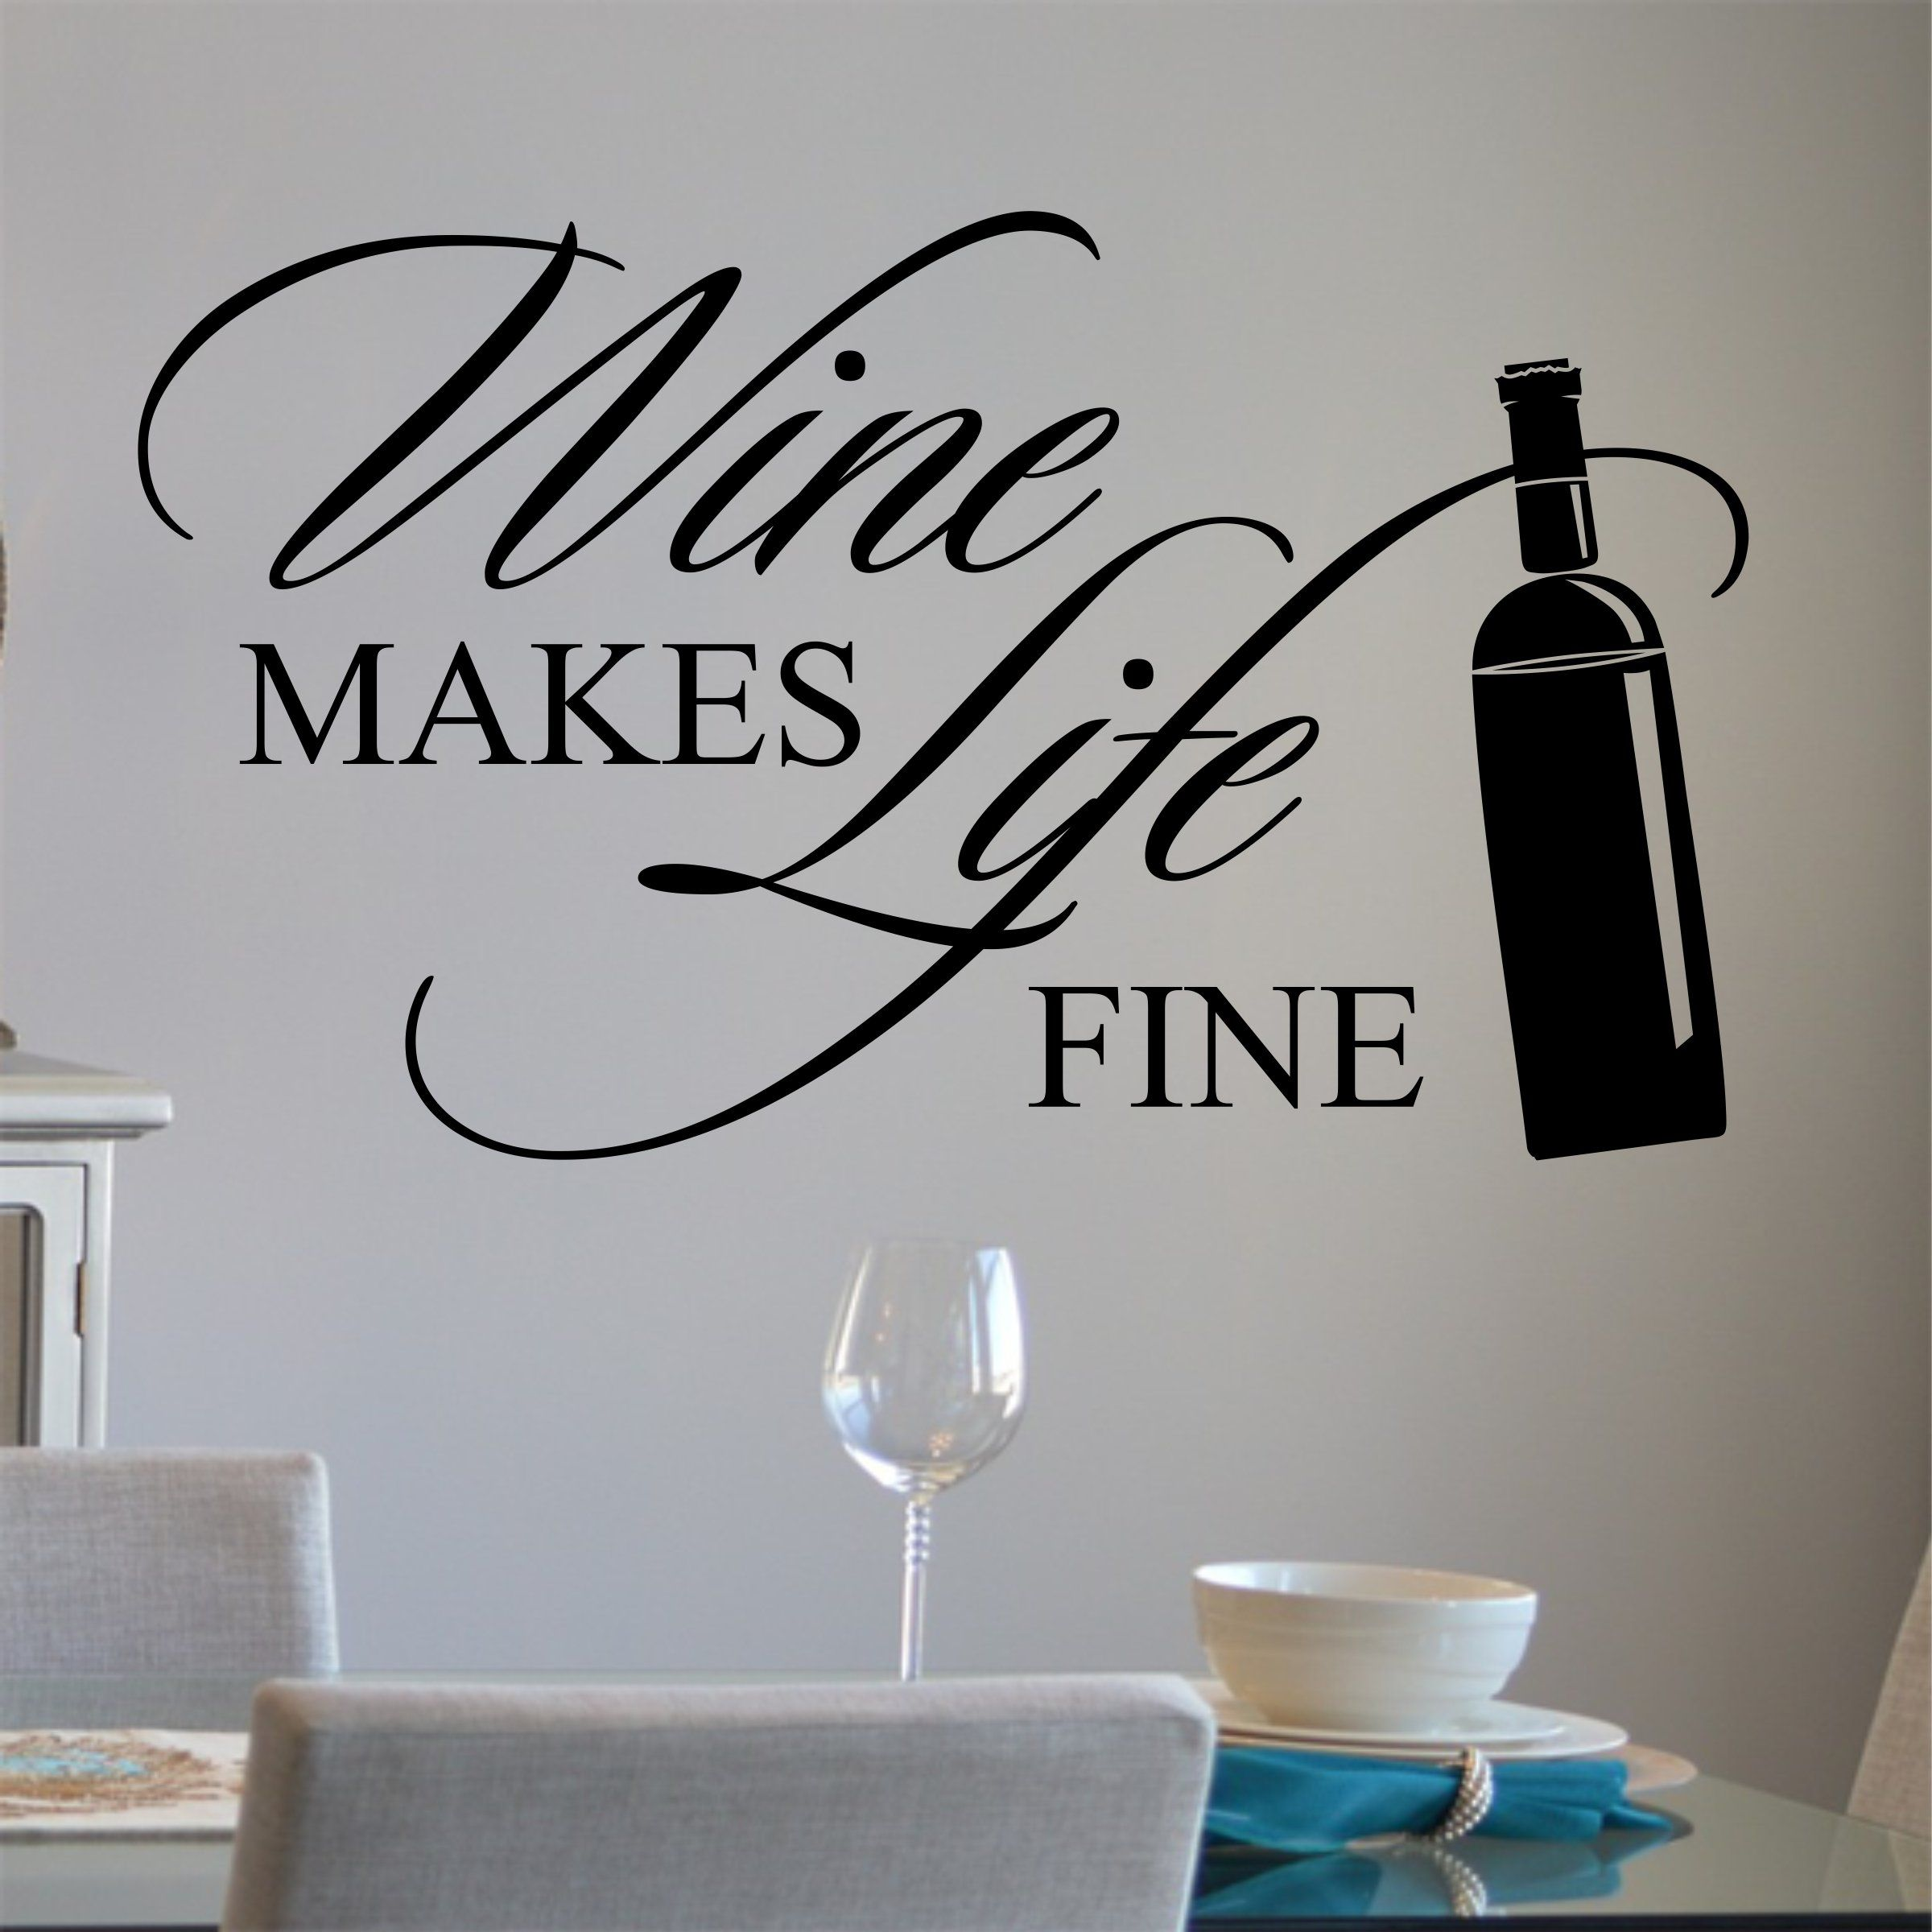 kitchen wall decal wine makes life fine farmhouse decor letter wall wine theme kitchen on kitchen decor quotes wall decals id=20834